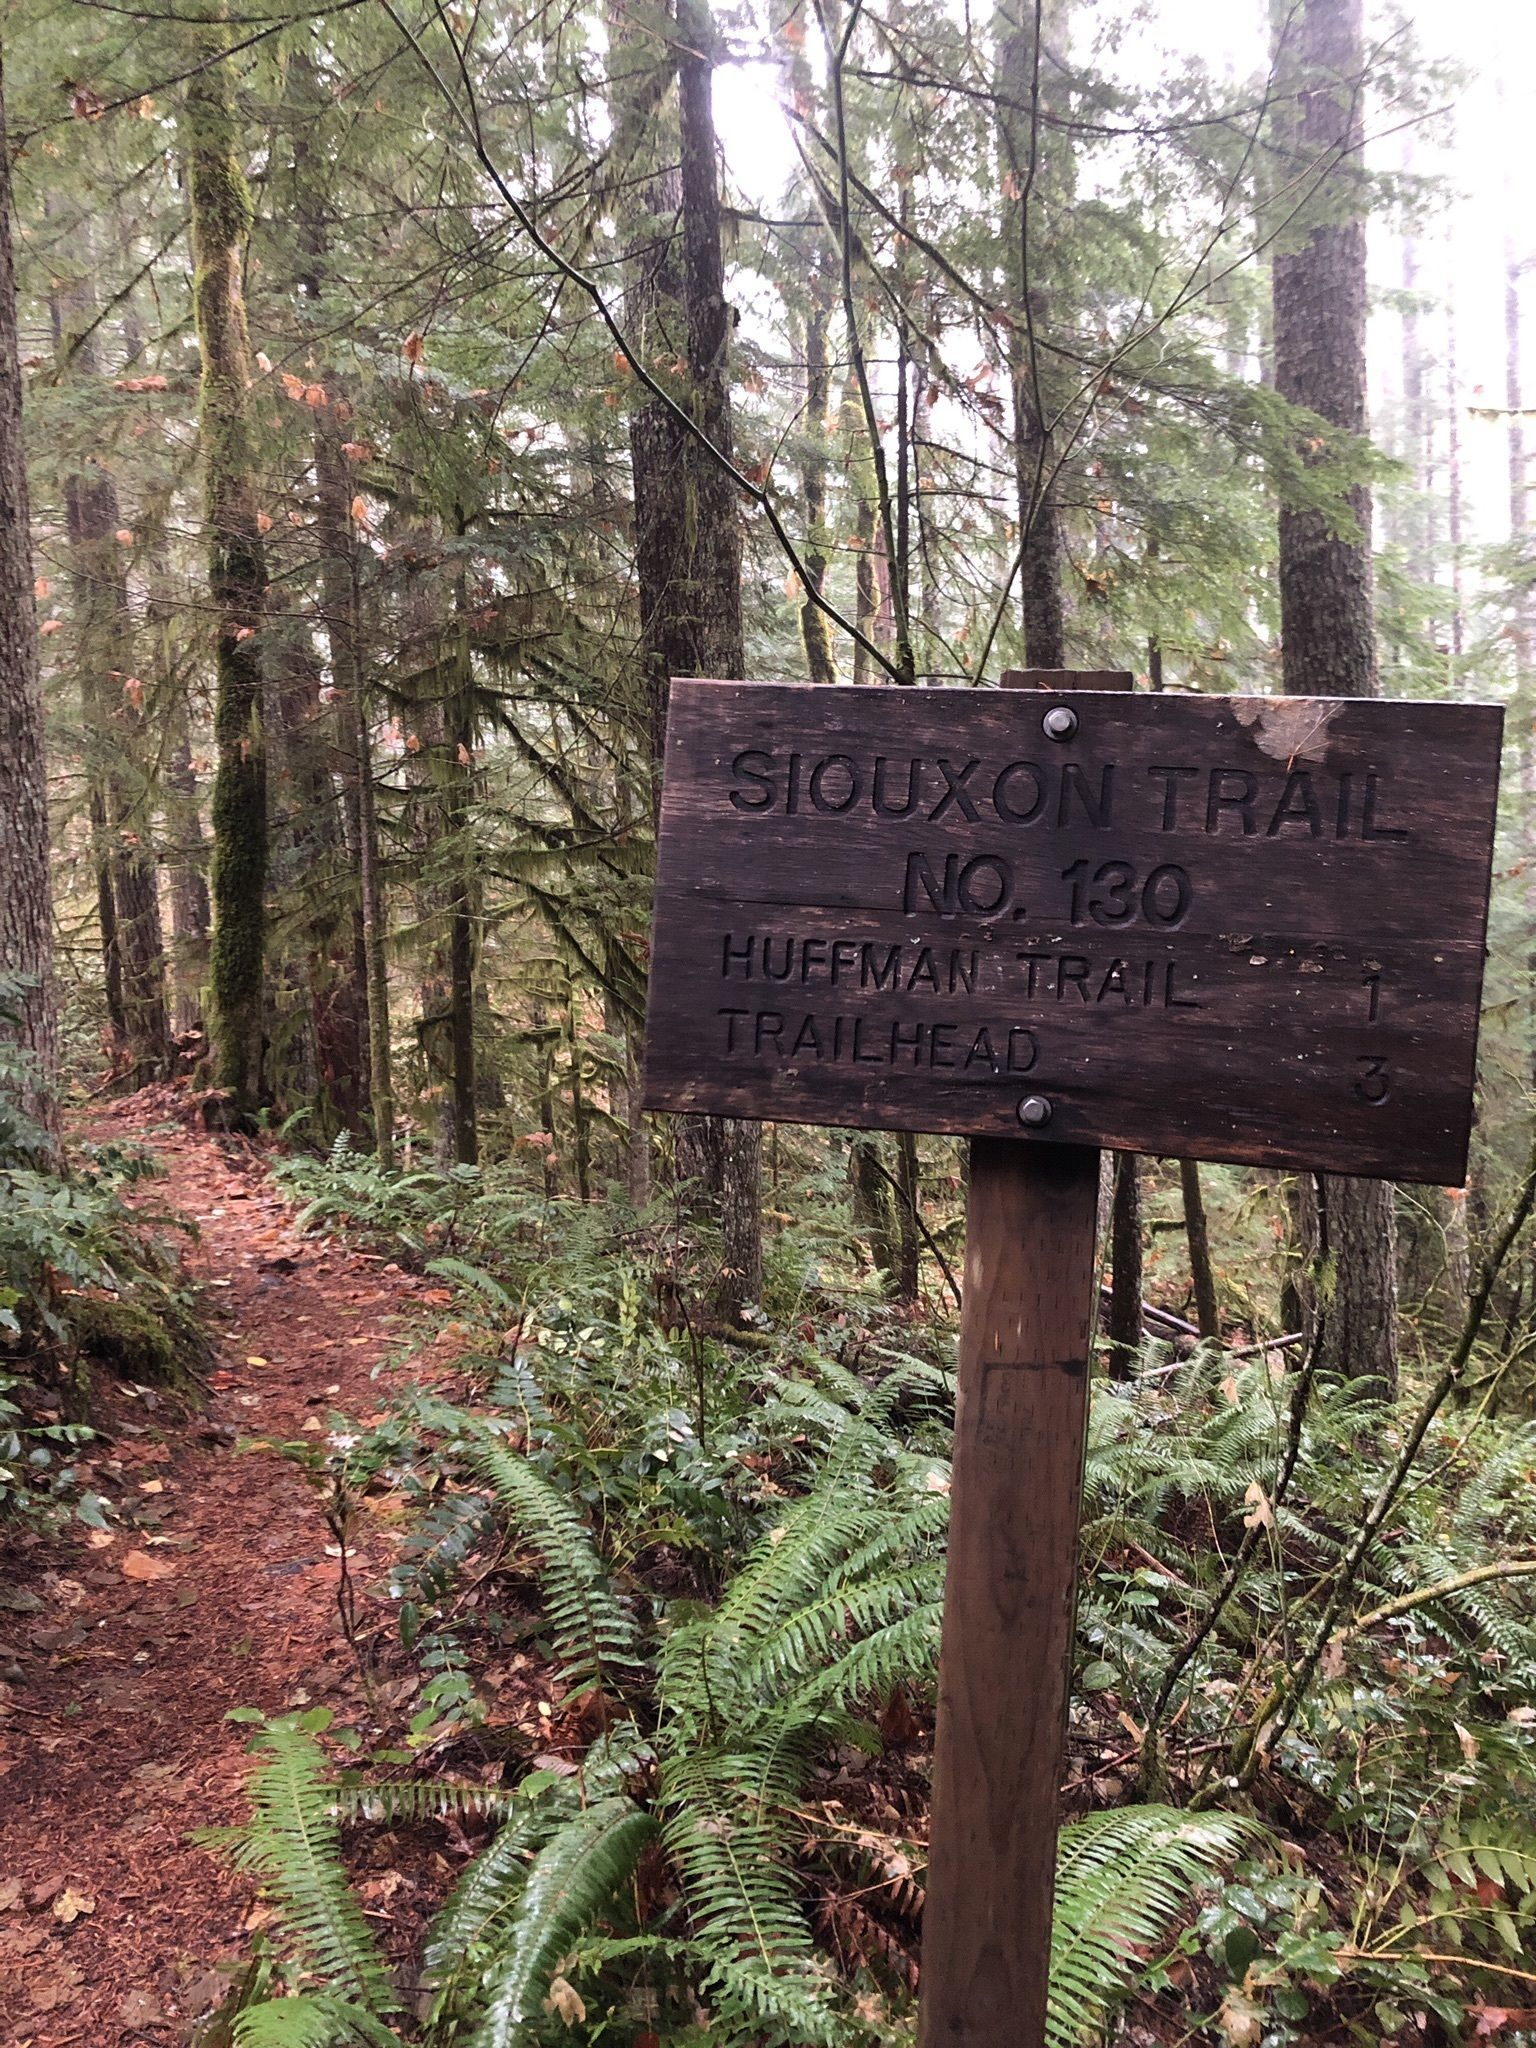 Gifford Pinchot National Forest: Camping & Hiking - HoodMWR